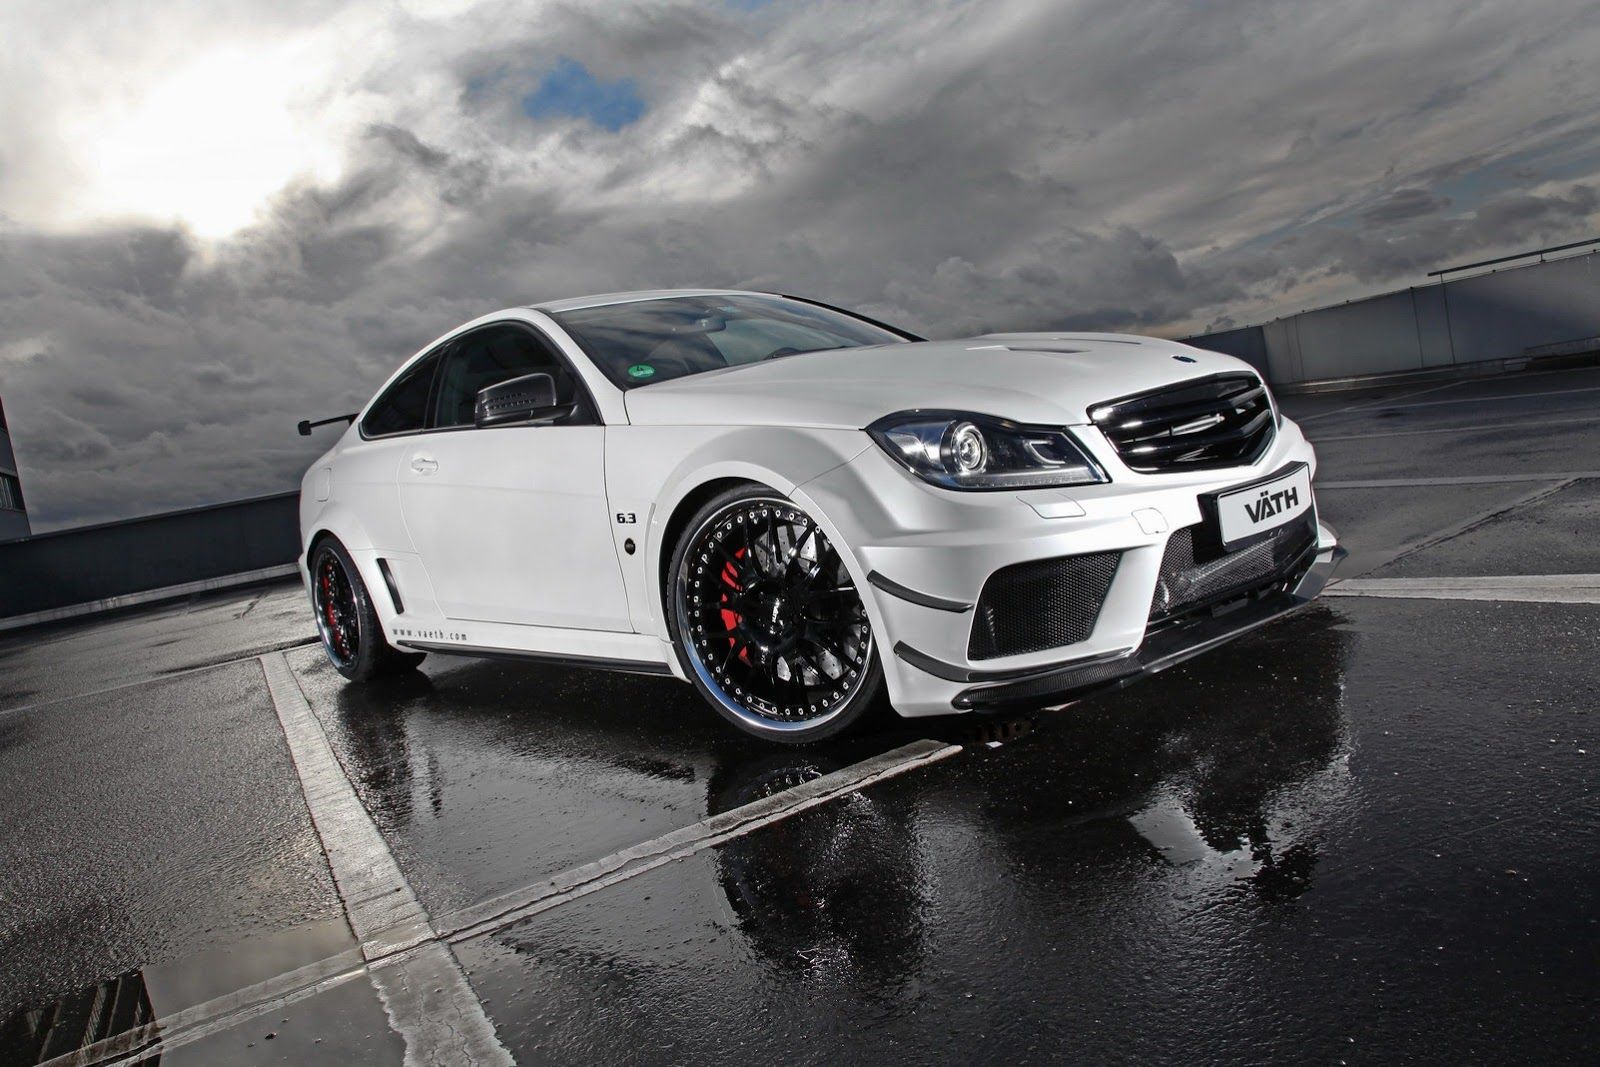 Vath has introduced their latest tuning project based on the powerful c 63 amg coup black series the name of the project is in vath v 63